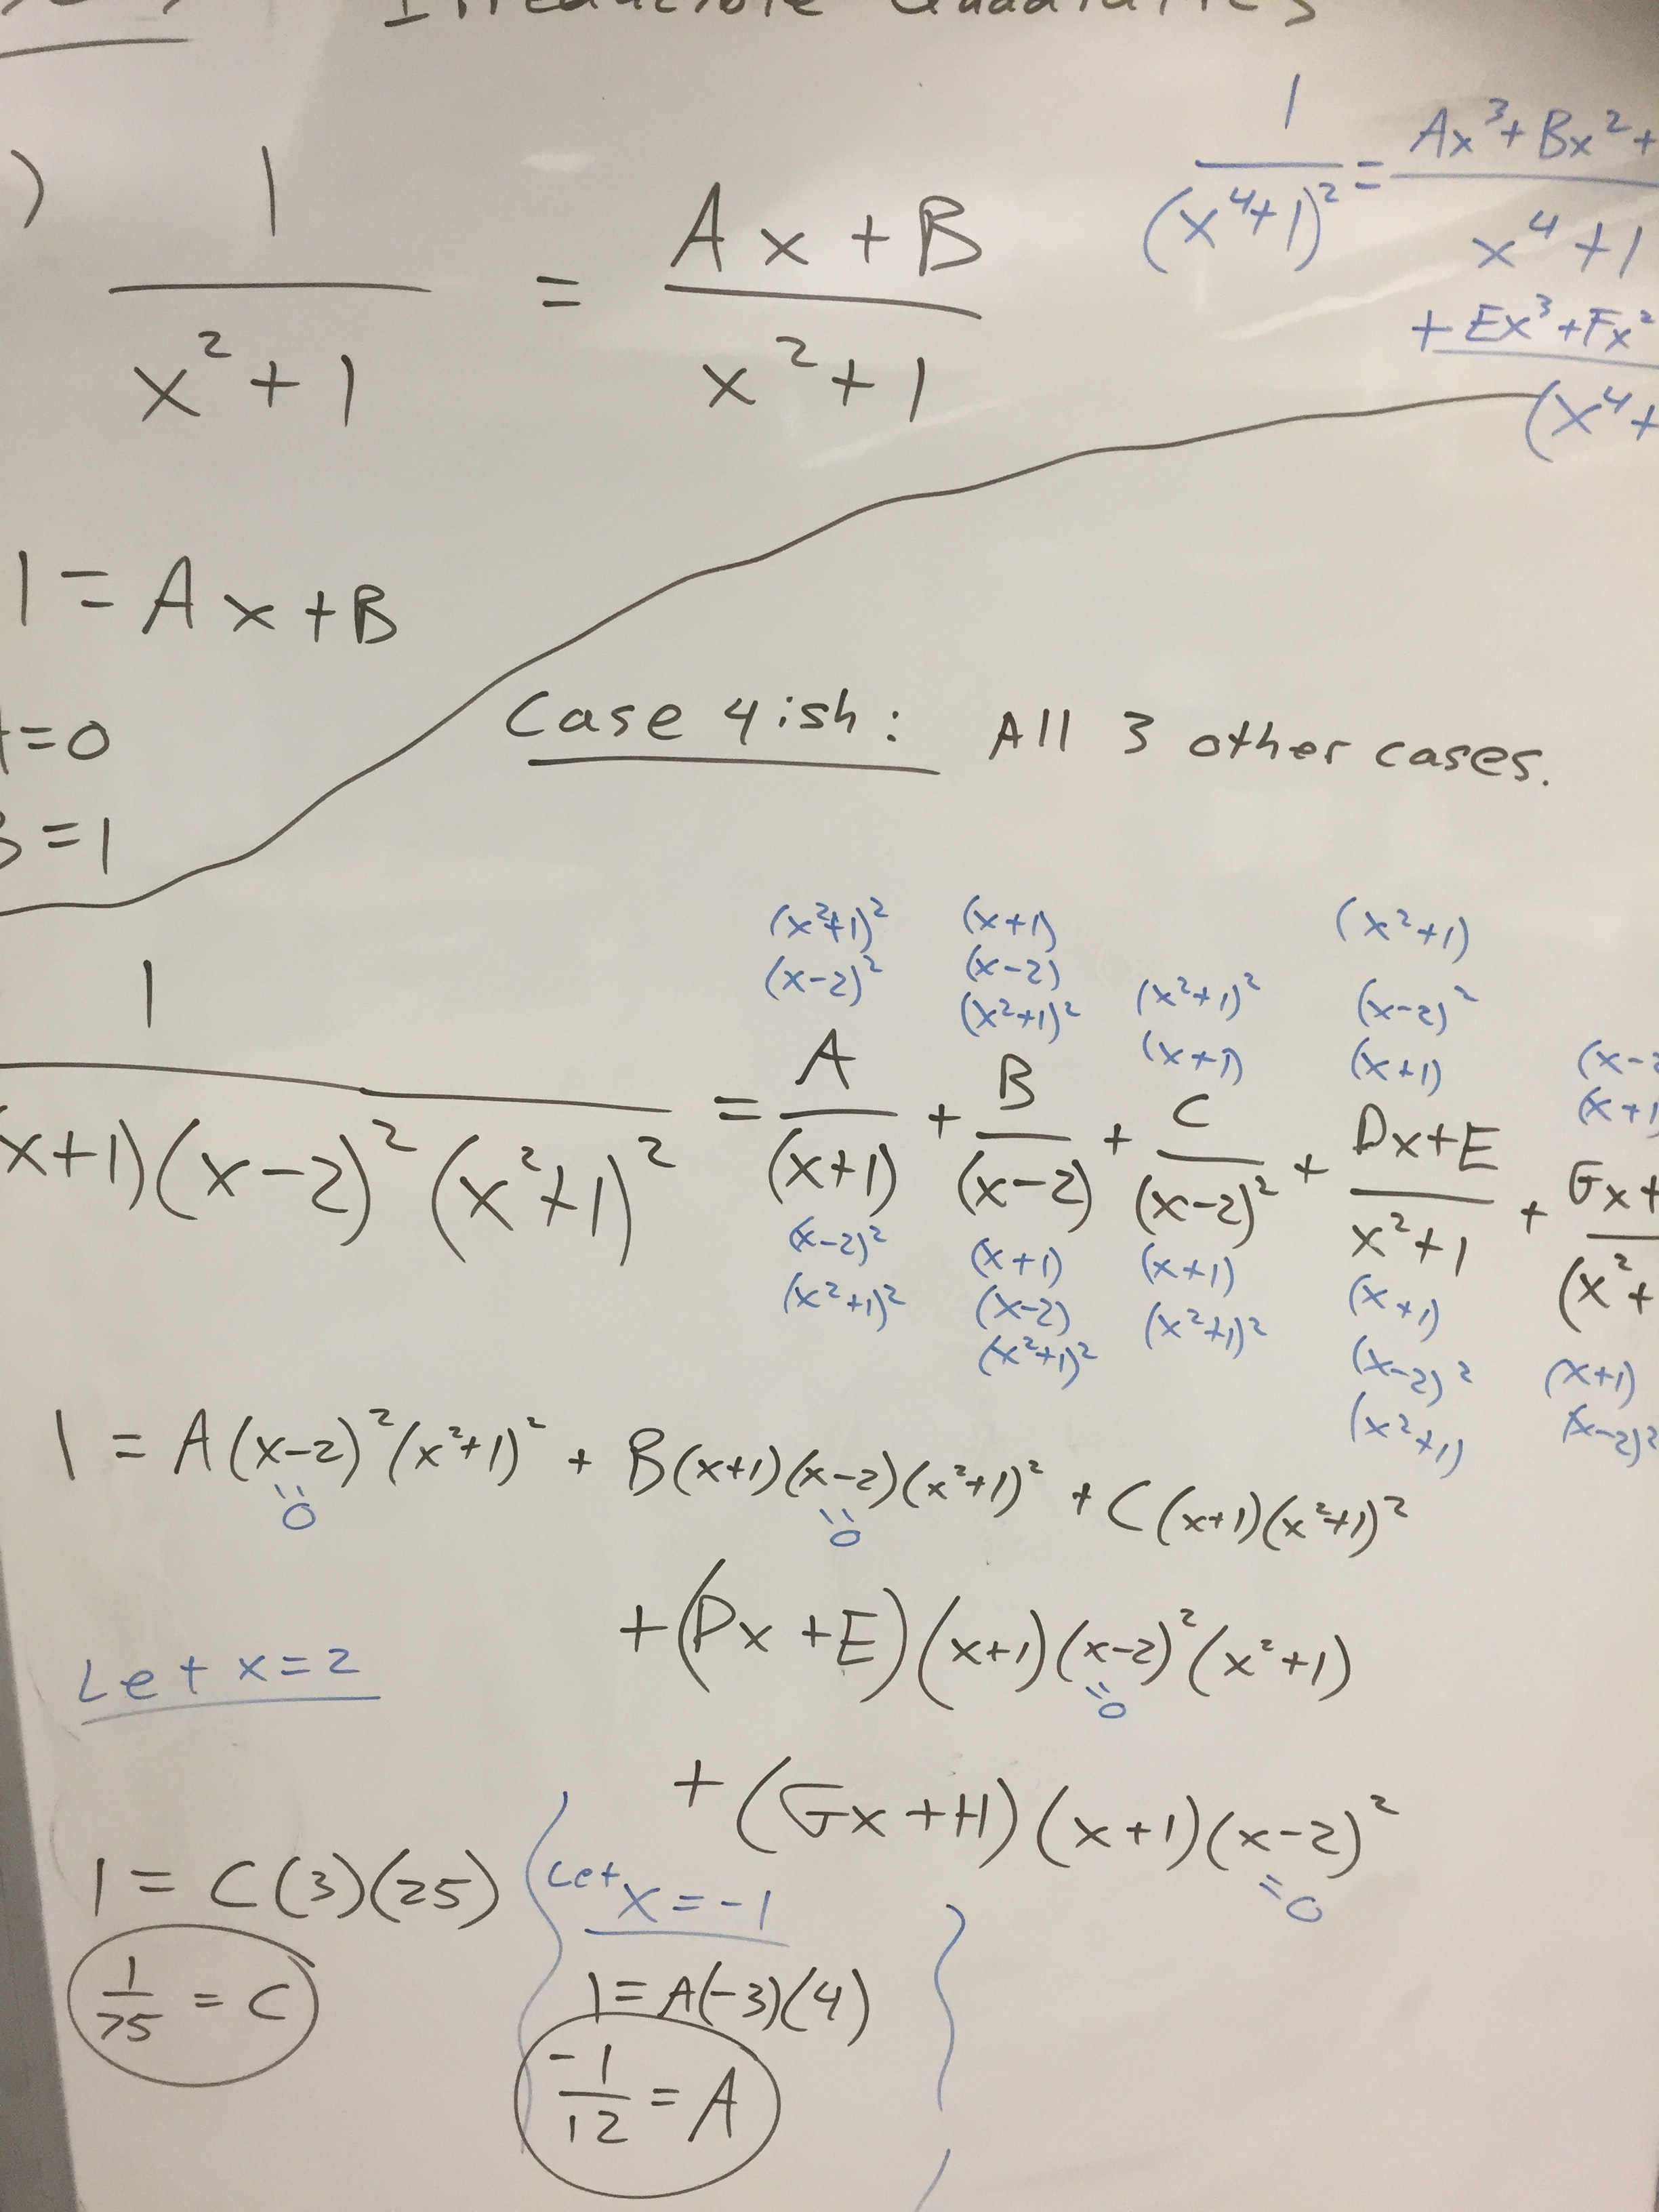 Algebra equations on a whiteboard.